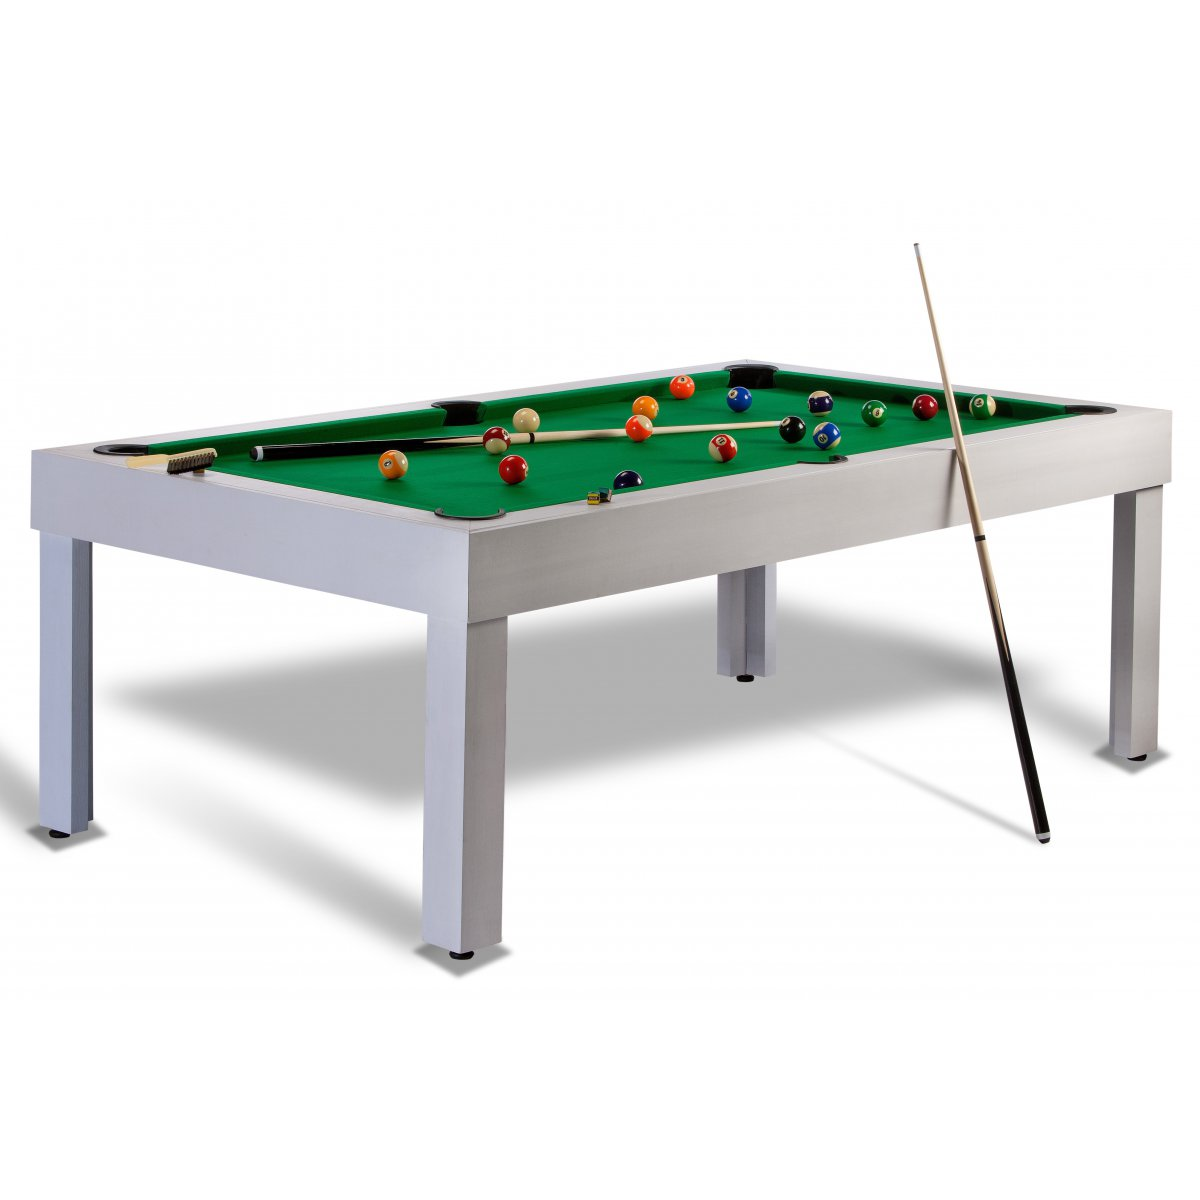 d co table de billard convertible 19 montpellier montpellier table. Black Bedroom Furniture Sets. Home Design Ideas